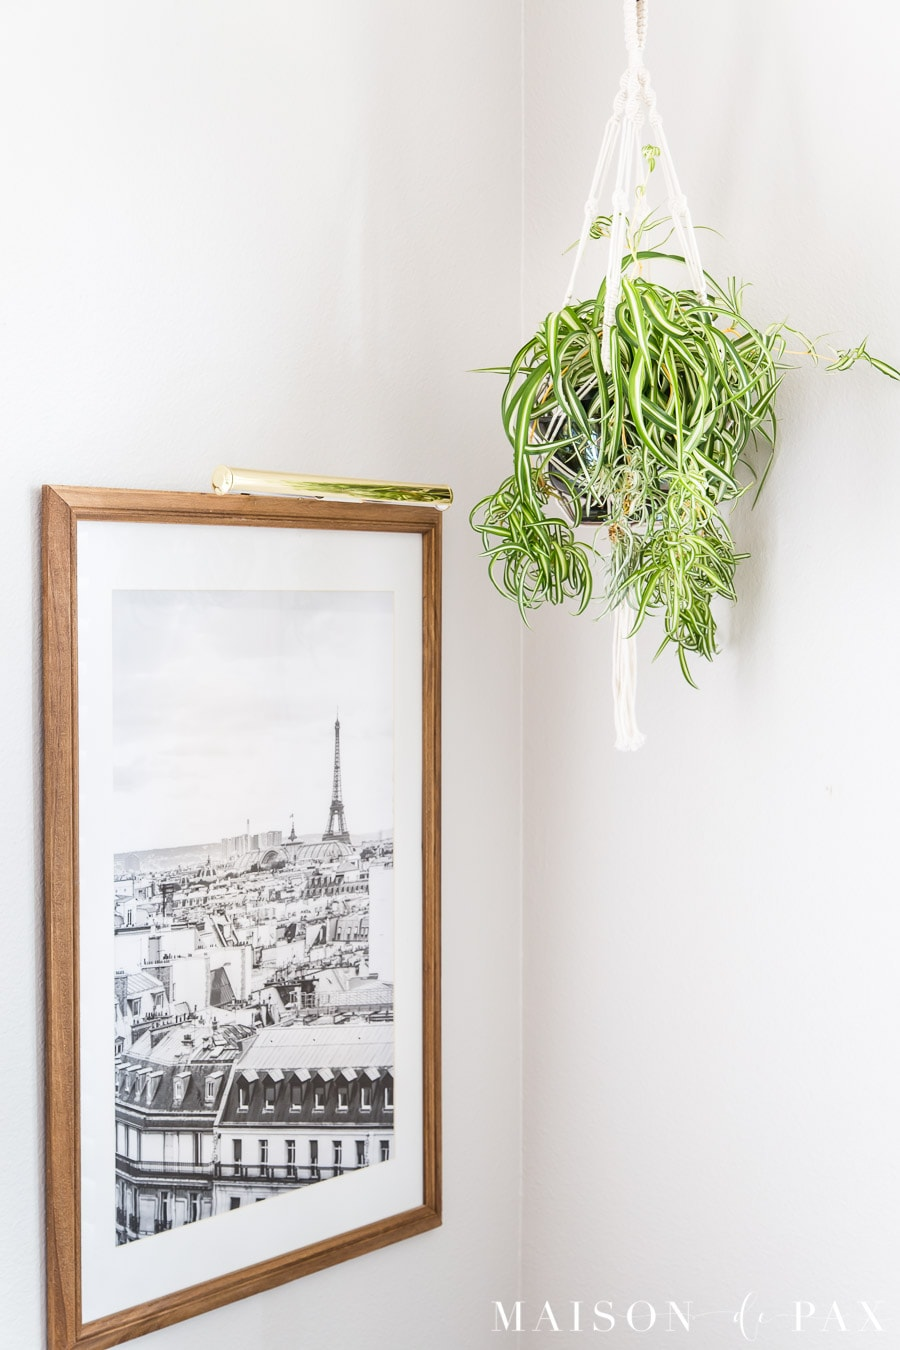 spider plant in silver pot and macrame hanging beside black and white wall art | Maison de Pax